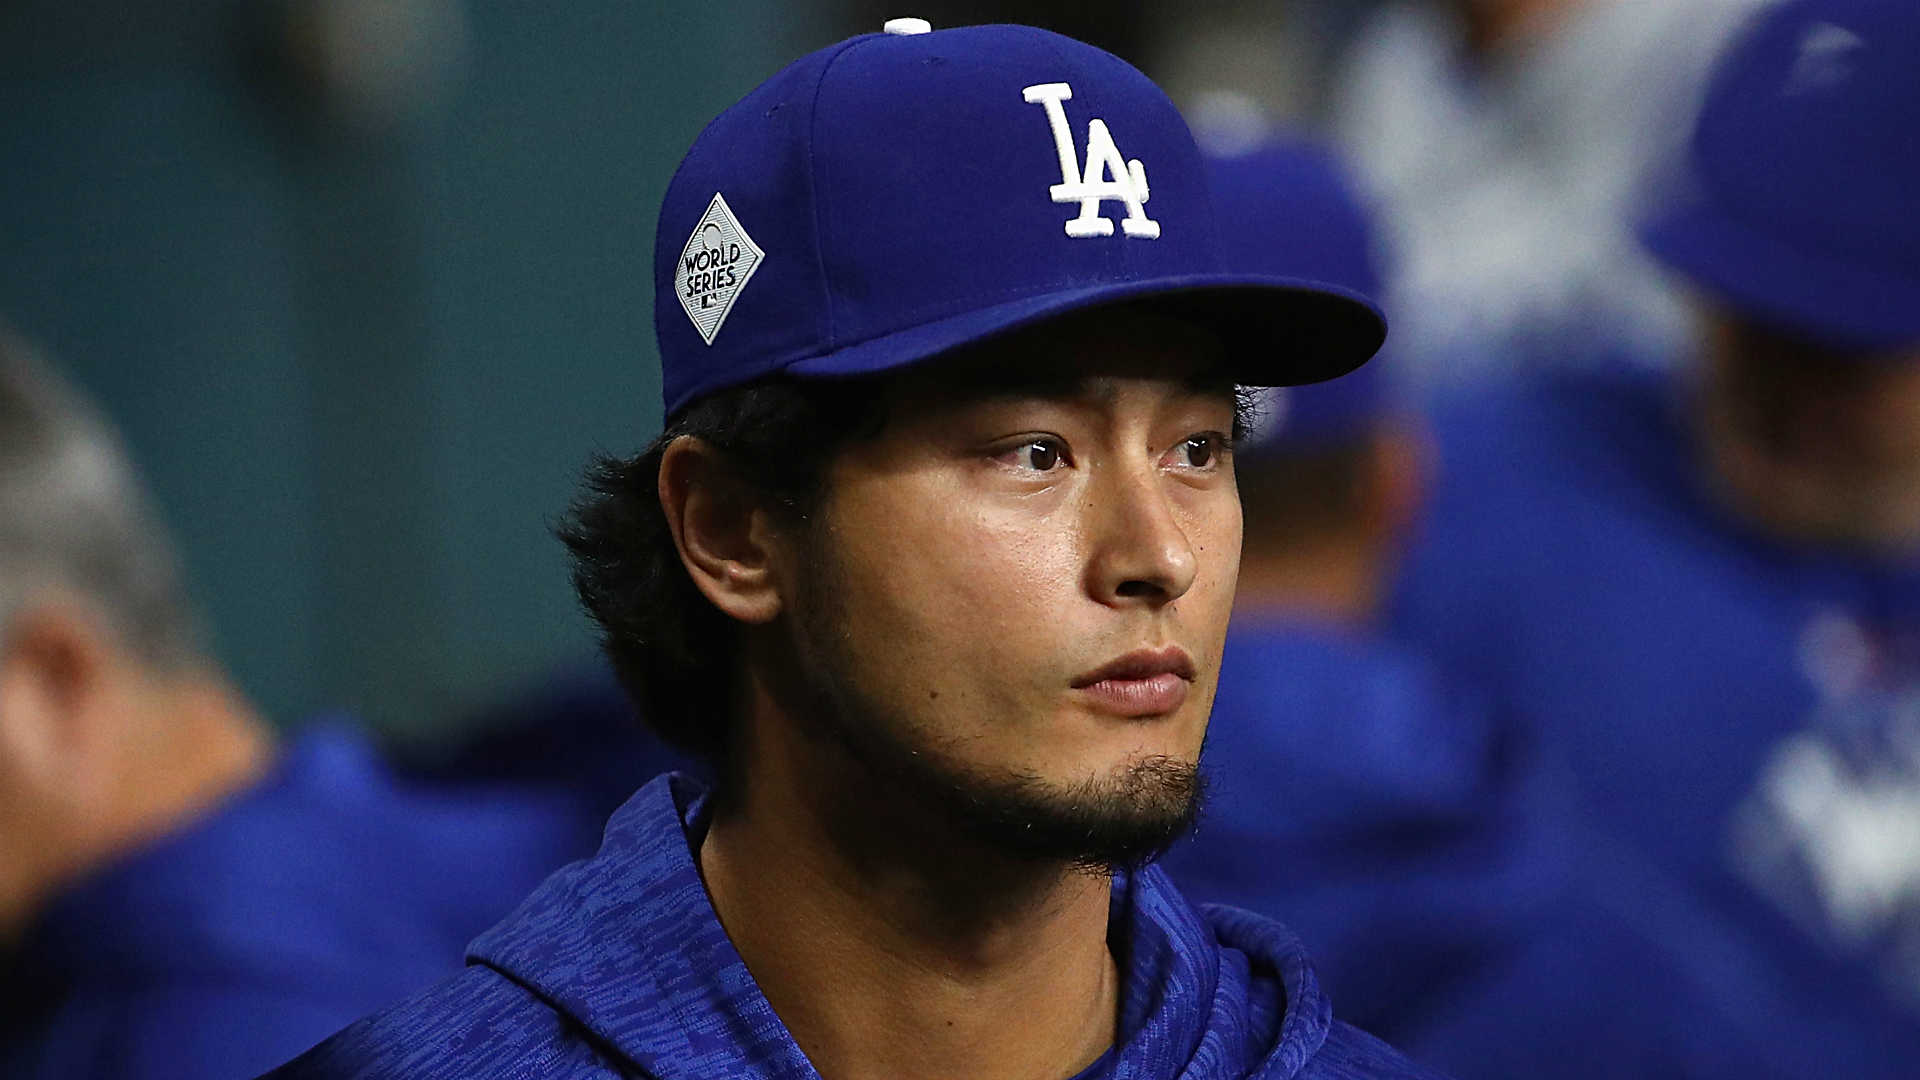 Darvish reportedly headed to Cubs